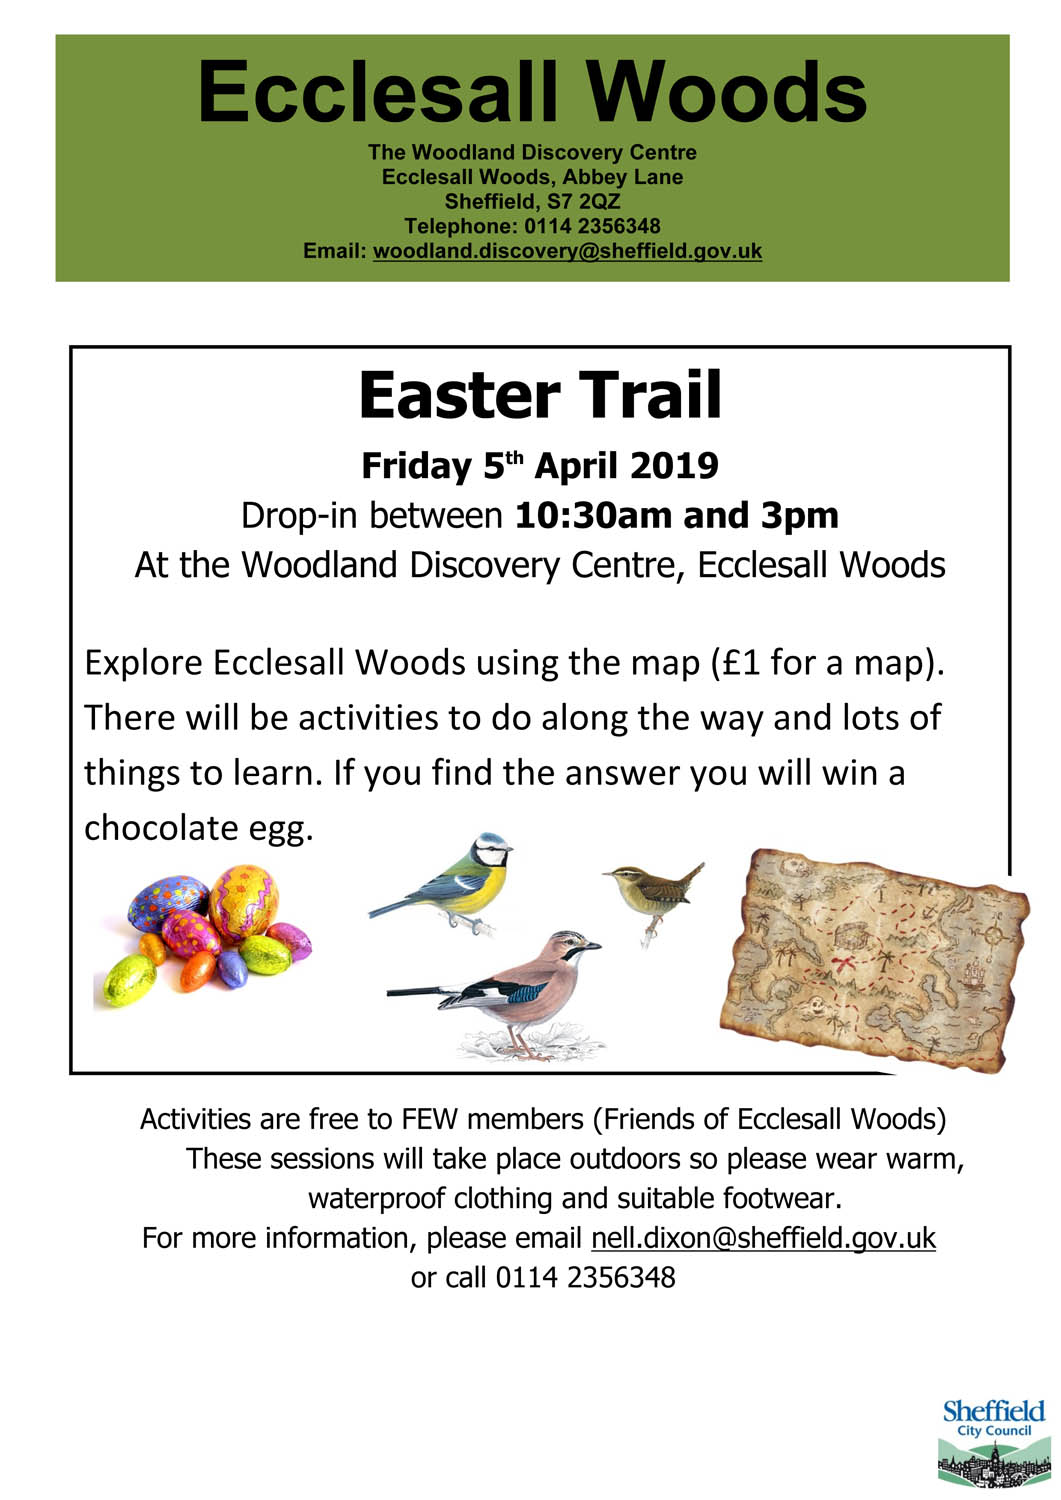 Easter 2019 Trail at Ecclesall Woods